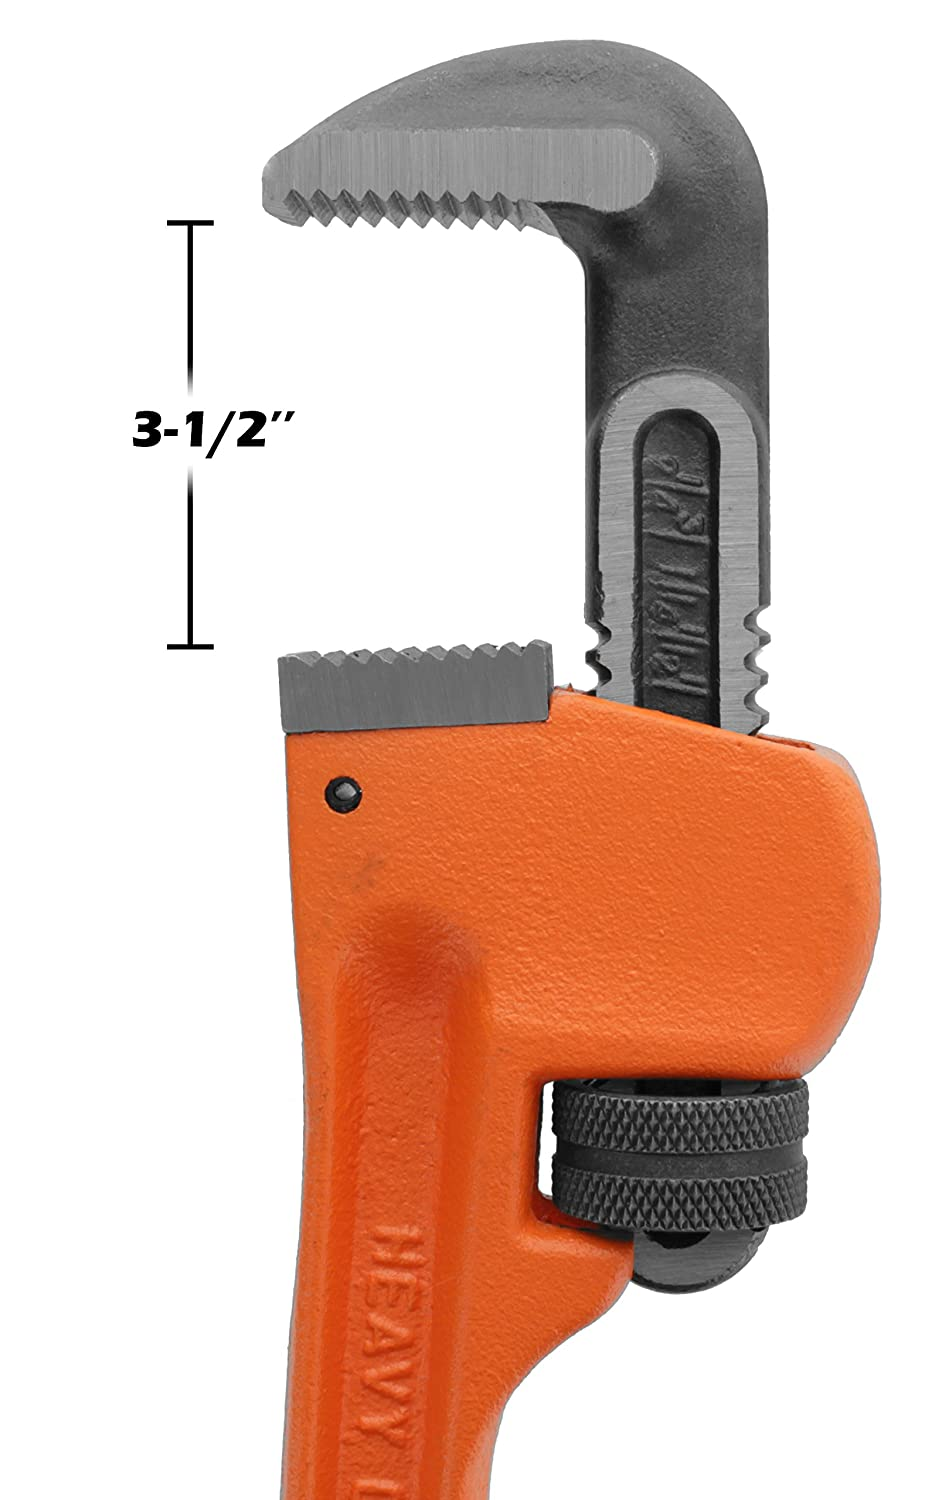 Drixet Heavy Duty 24 Pipe Wrench General Purpose Industrial Tool Made of Drop Forged Heat Treated Steel Jaws /& Nuts